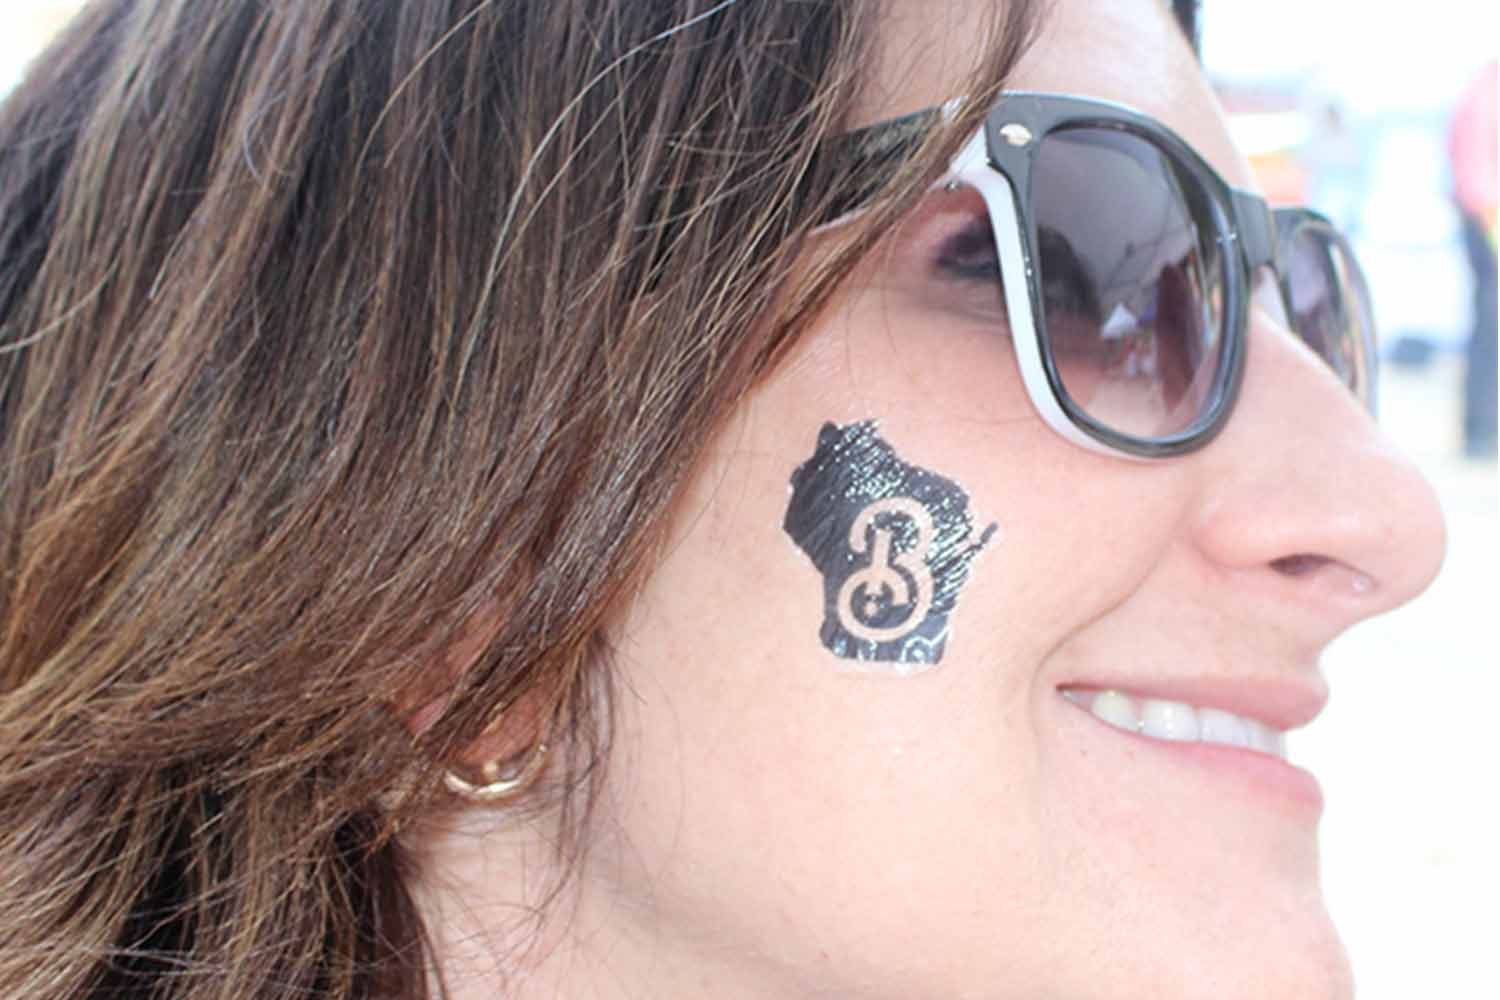 Board President shows off her temporary tattoo